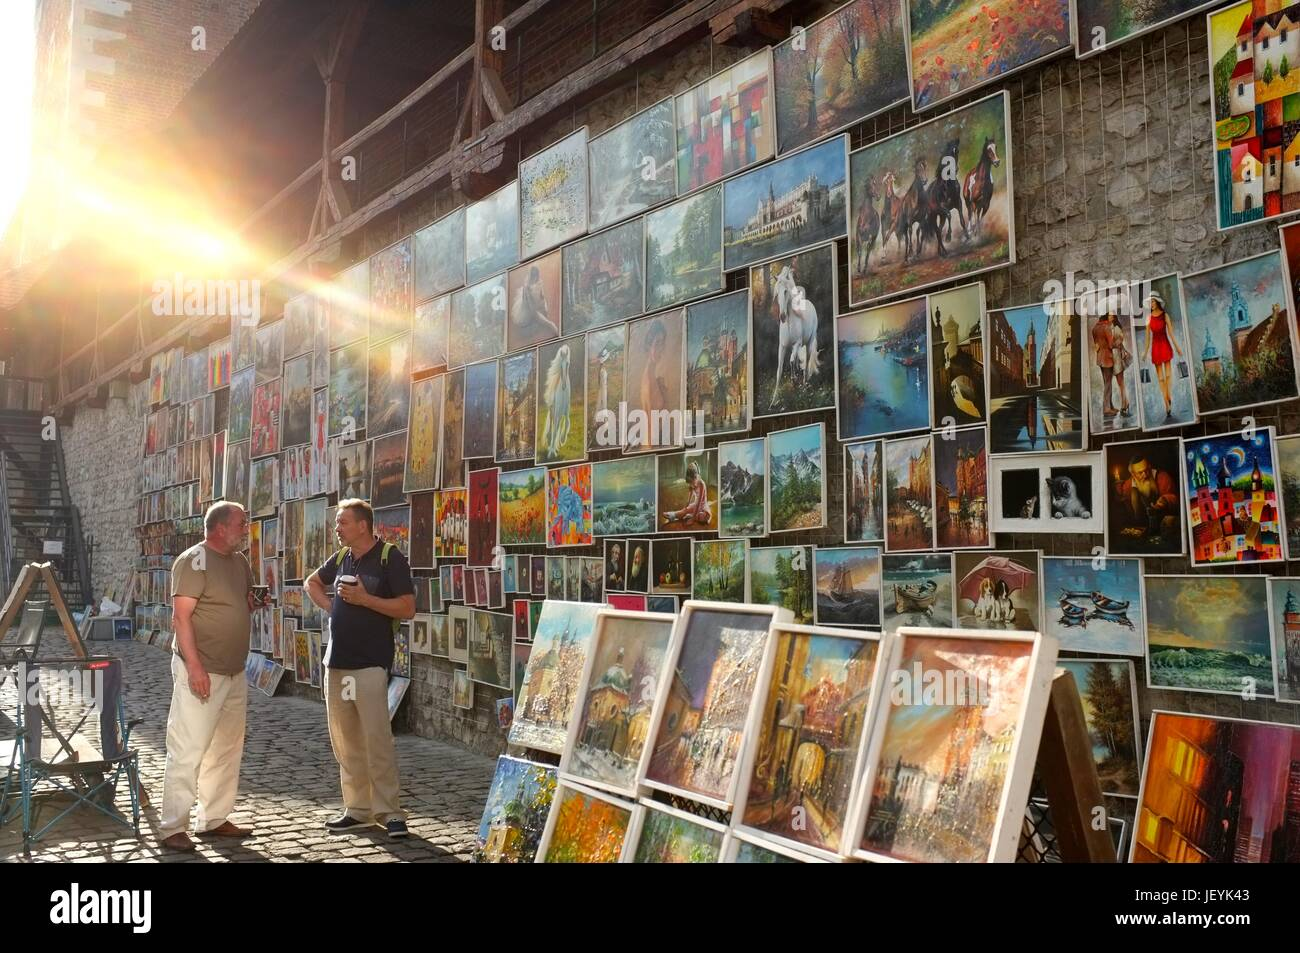 Paintings and artwork on sale in the Old Town of Krakow, Poland, Central/Eastern Europe, June 2017. Stock Photo